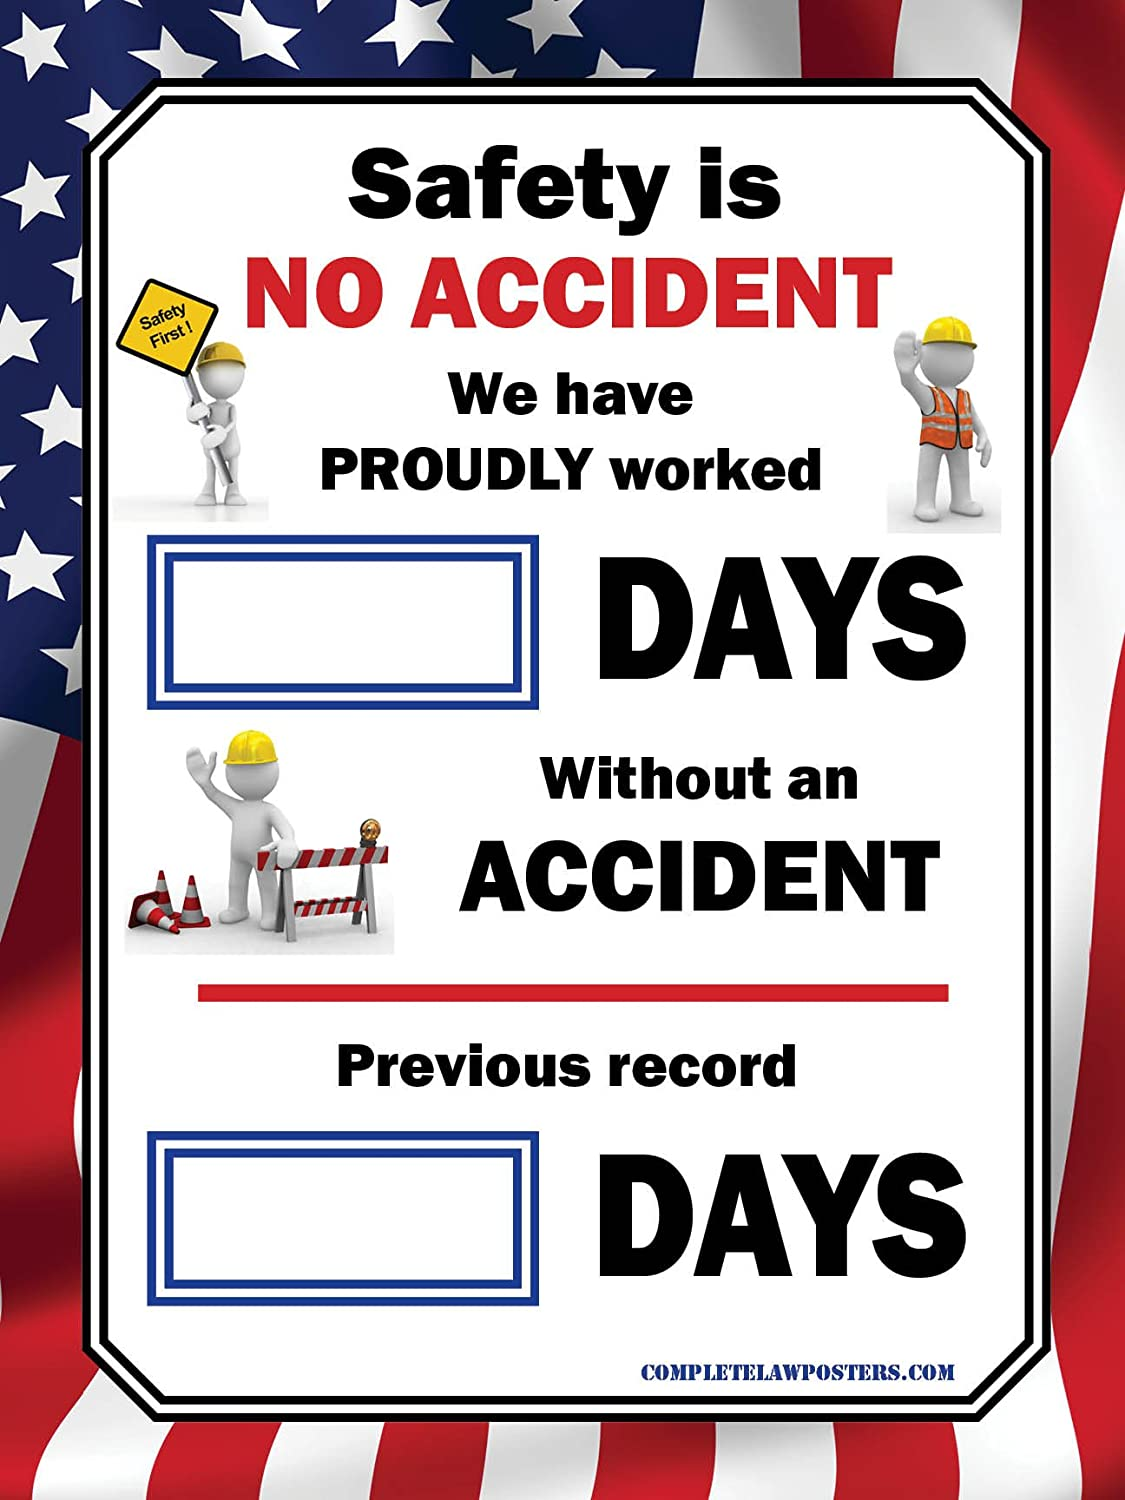 Amazon.com : Days Without An Accident Poster : Office Products